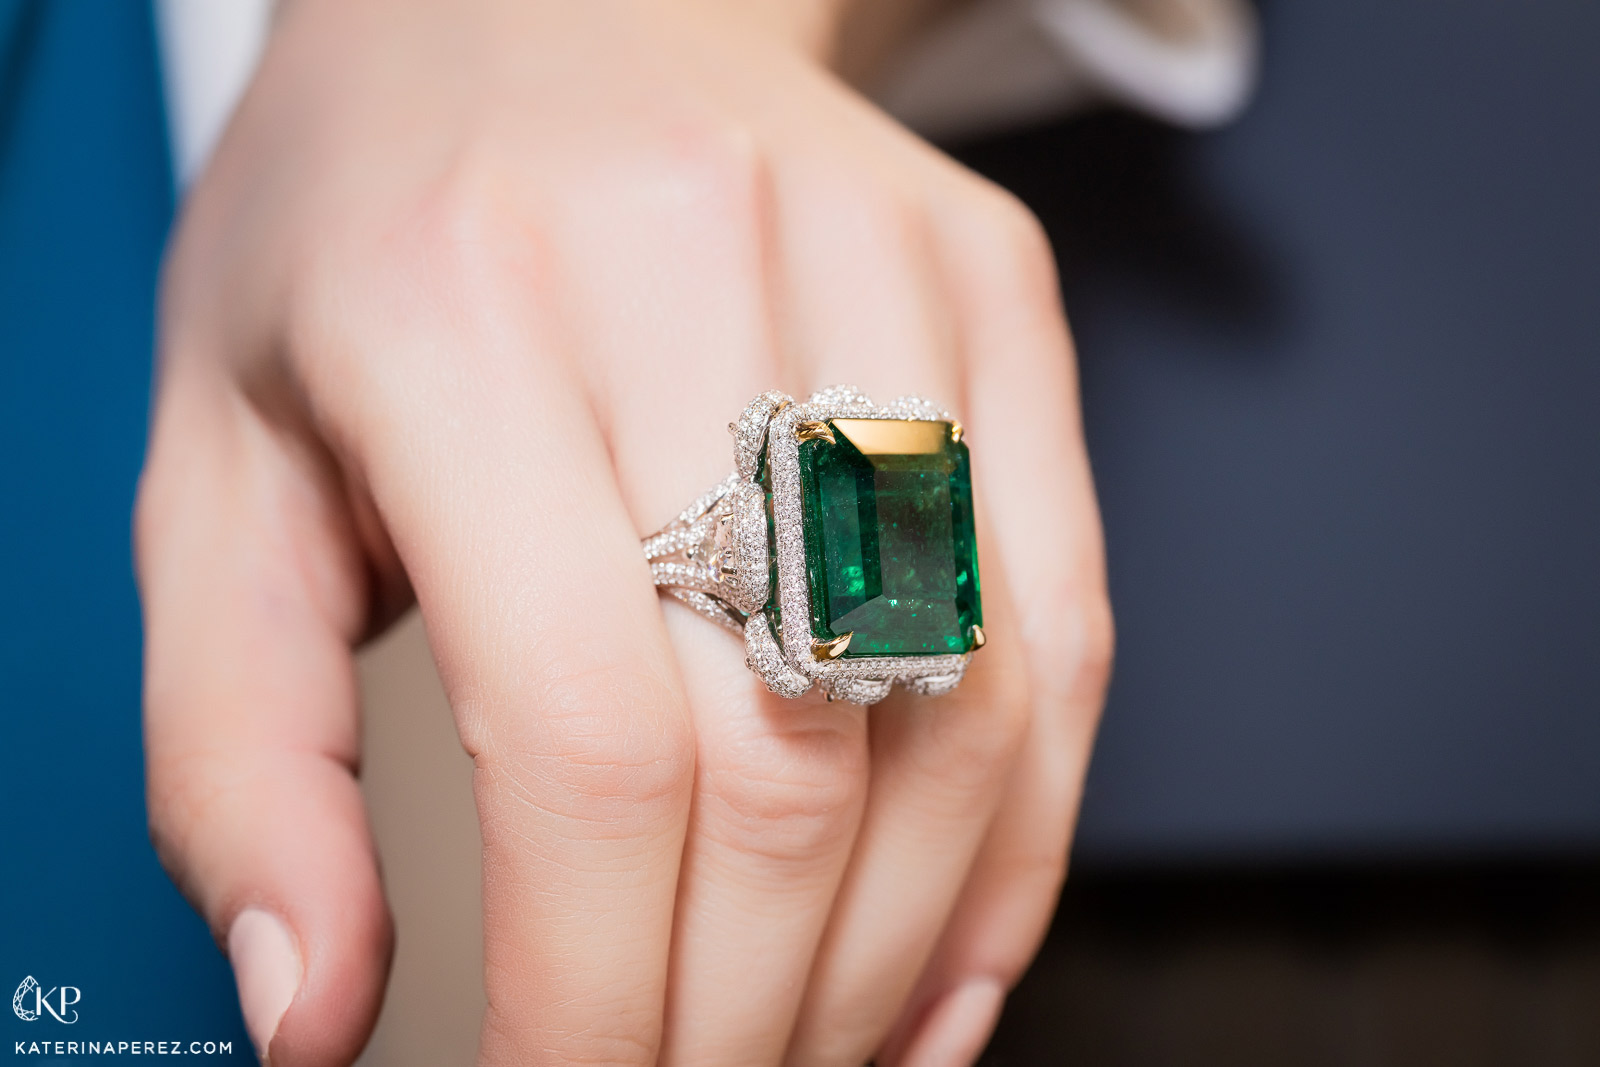 Takat cocktail ring with 24 cts Colombian emerald and 8 cts of diamonds. Photo by Simon Martner.